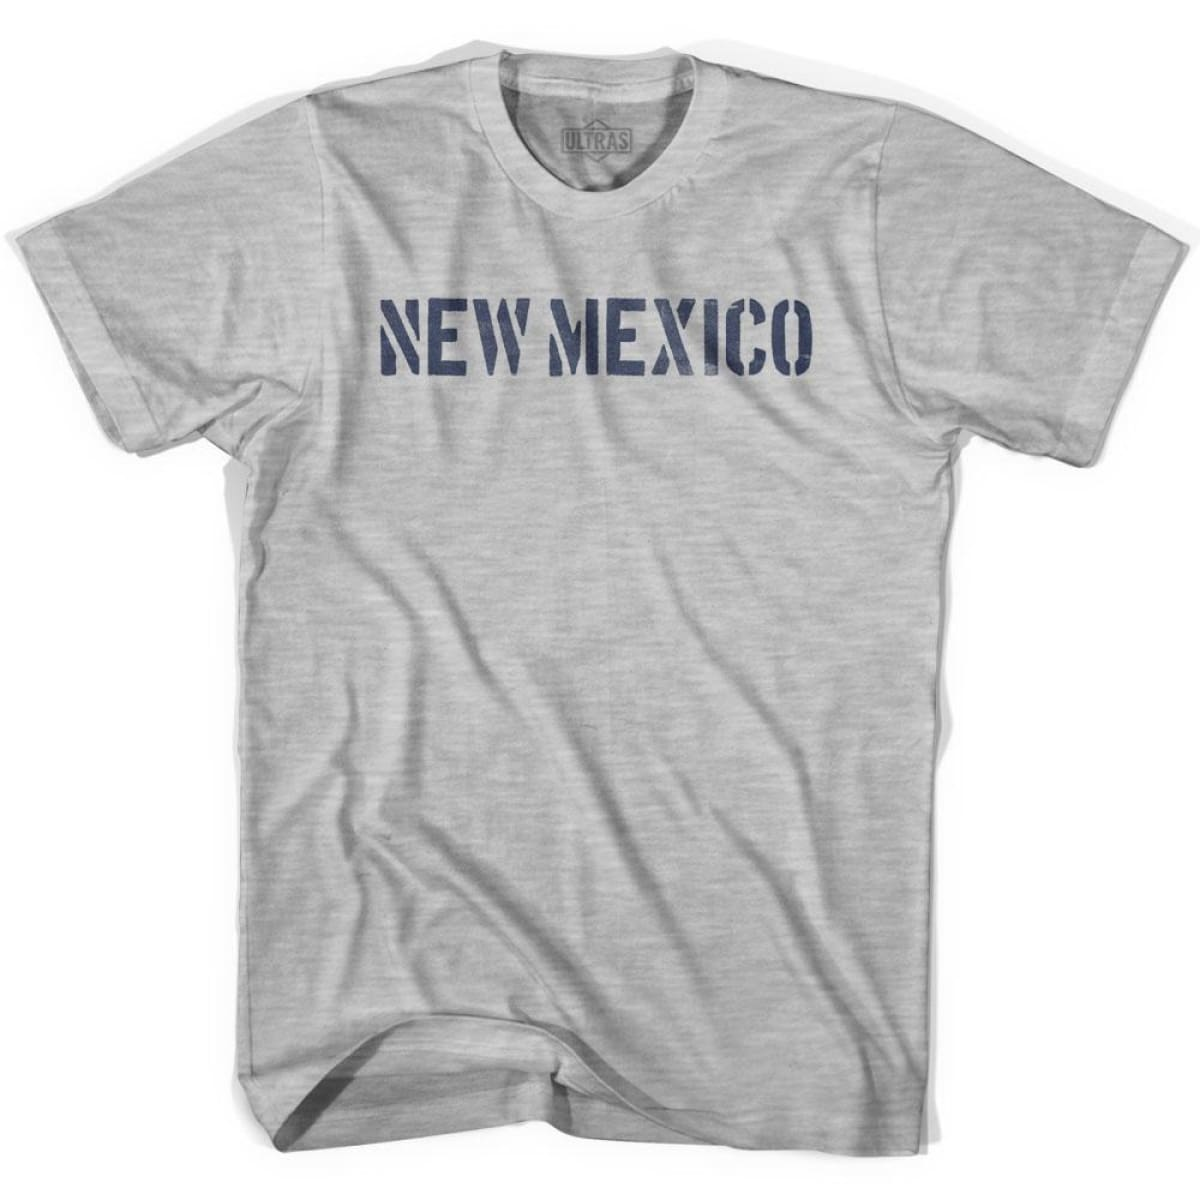 New Mexico State Stencil Adult Cotton T-shirt - Grey Heather / Adult Small - Stencil State